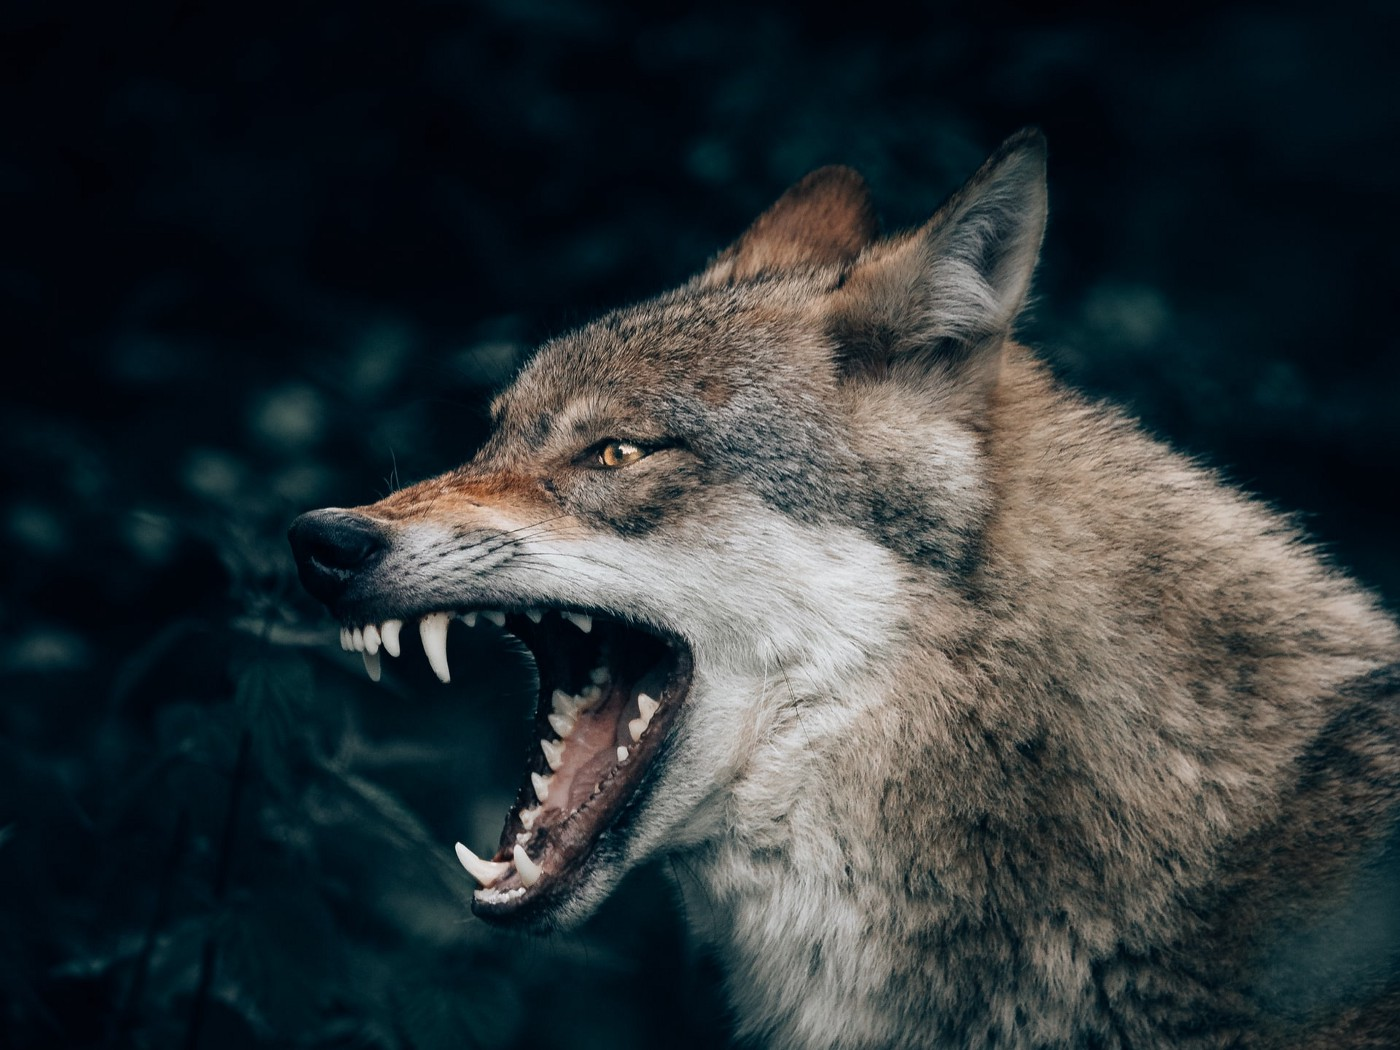 A gray wolf snarling in a forest.